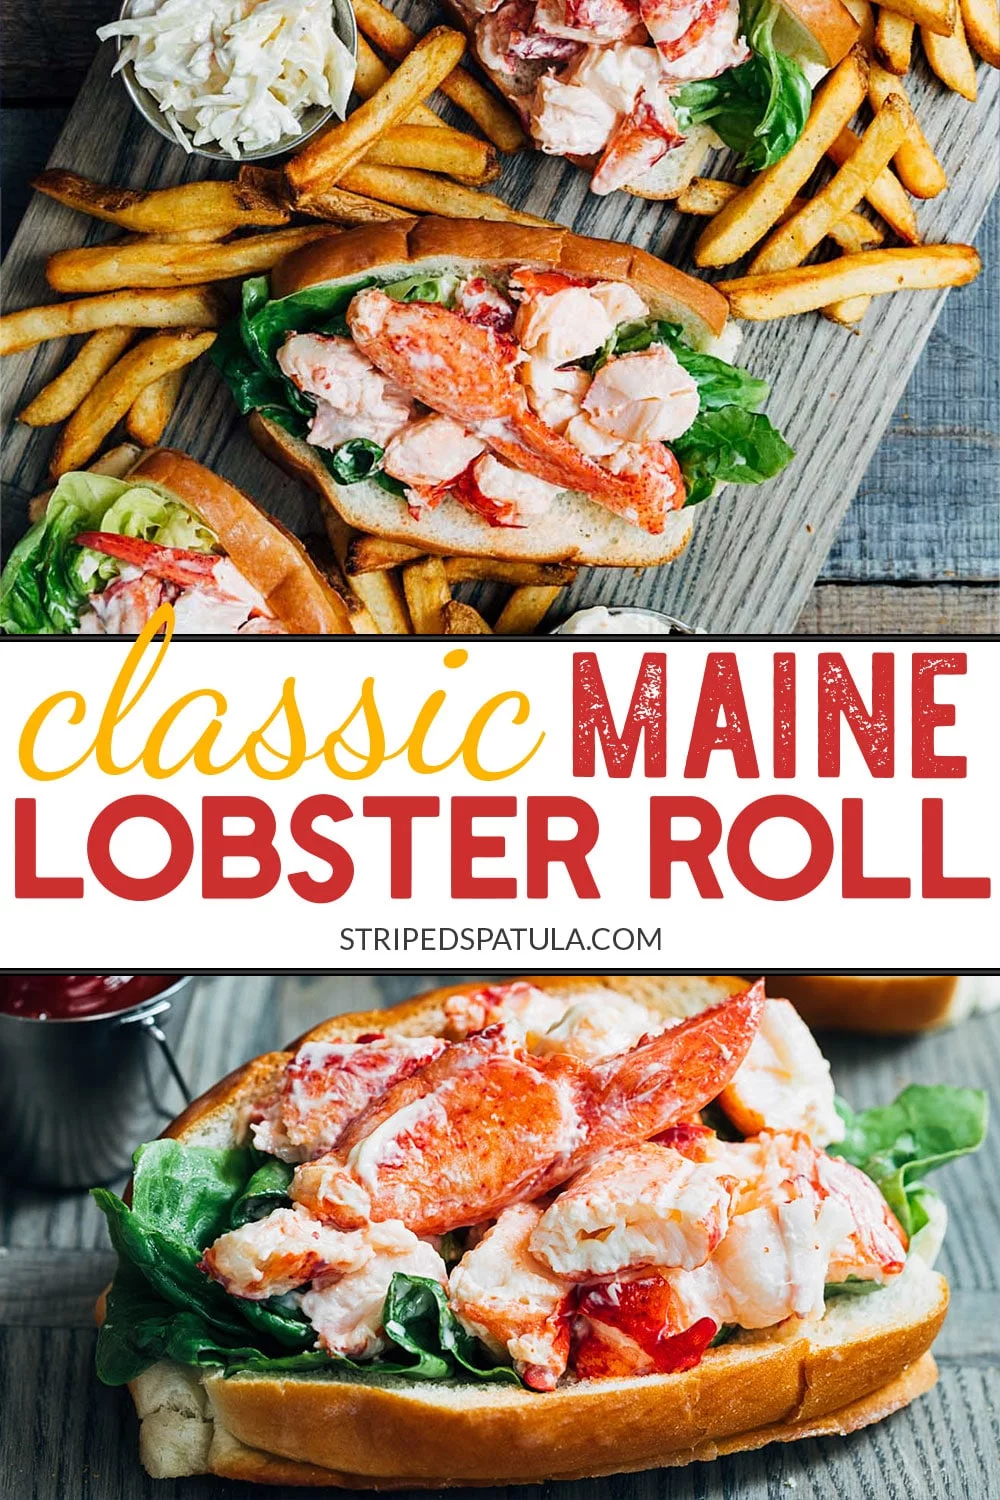 Enjoy a taste of New England at home with this Maine lobster roll recipe! With just a few easy steps, you'll can make a classic lobster salad roll, just like the ones served on the coast. #lobster #sandwich #lobsterroll